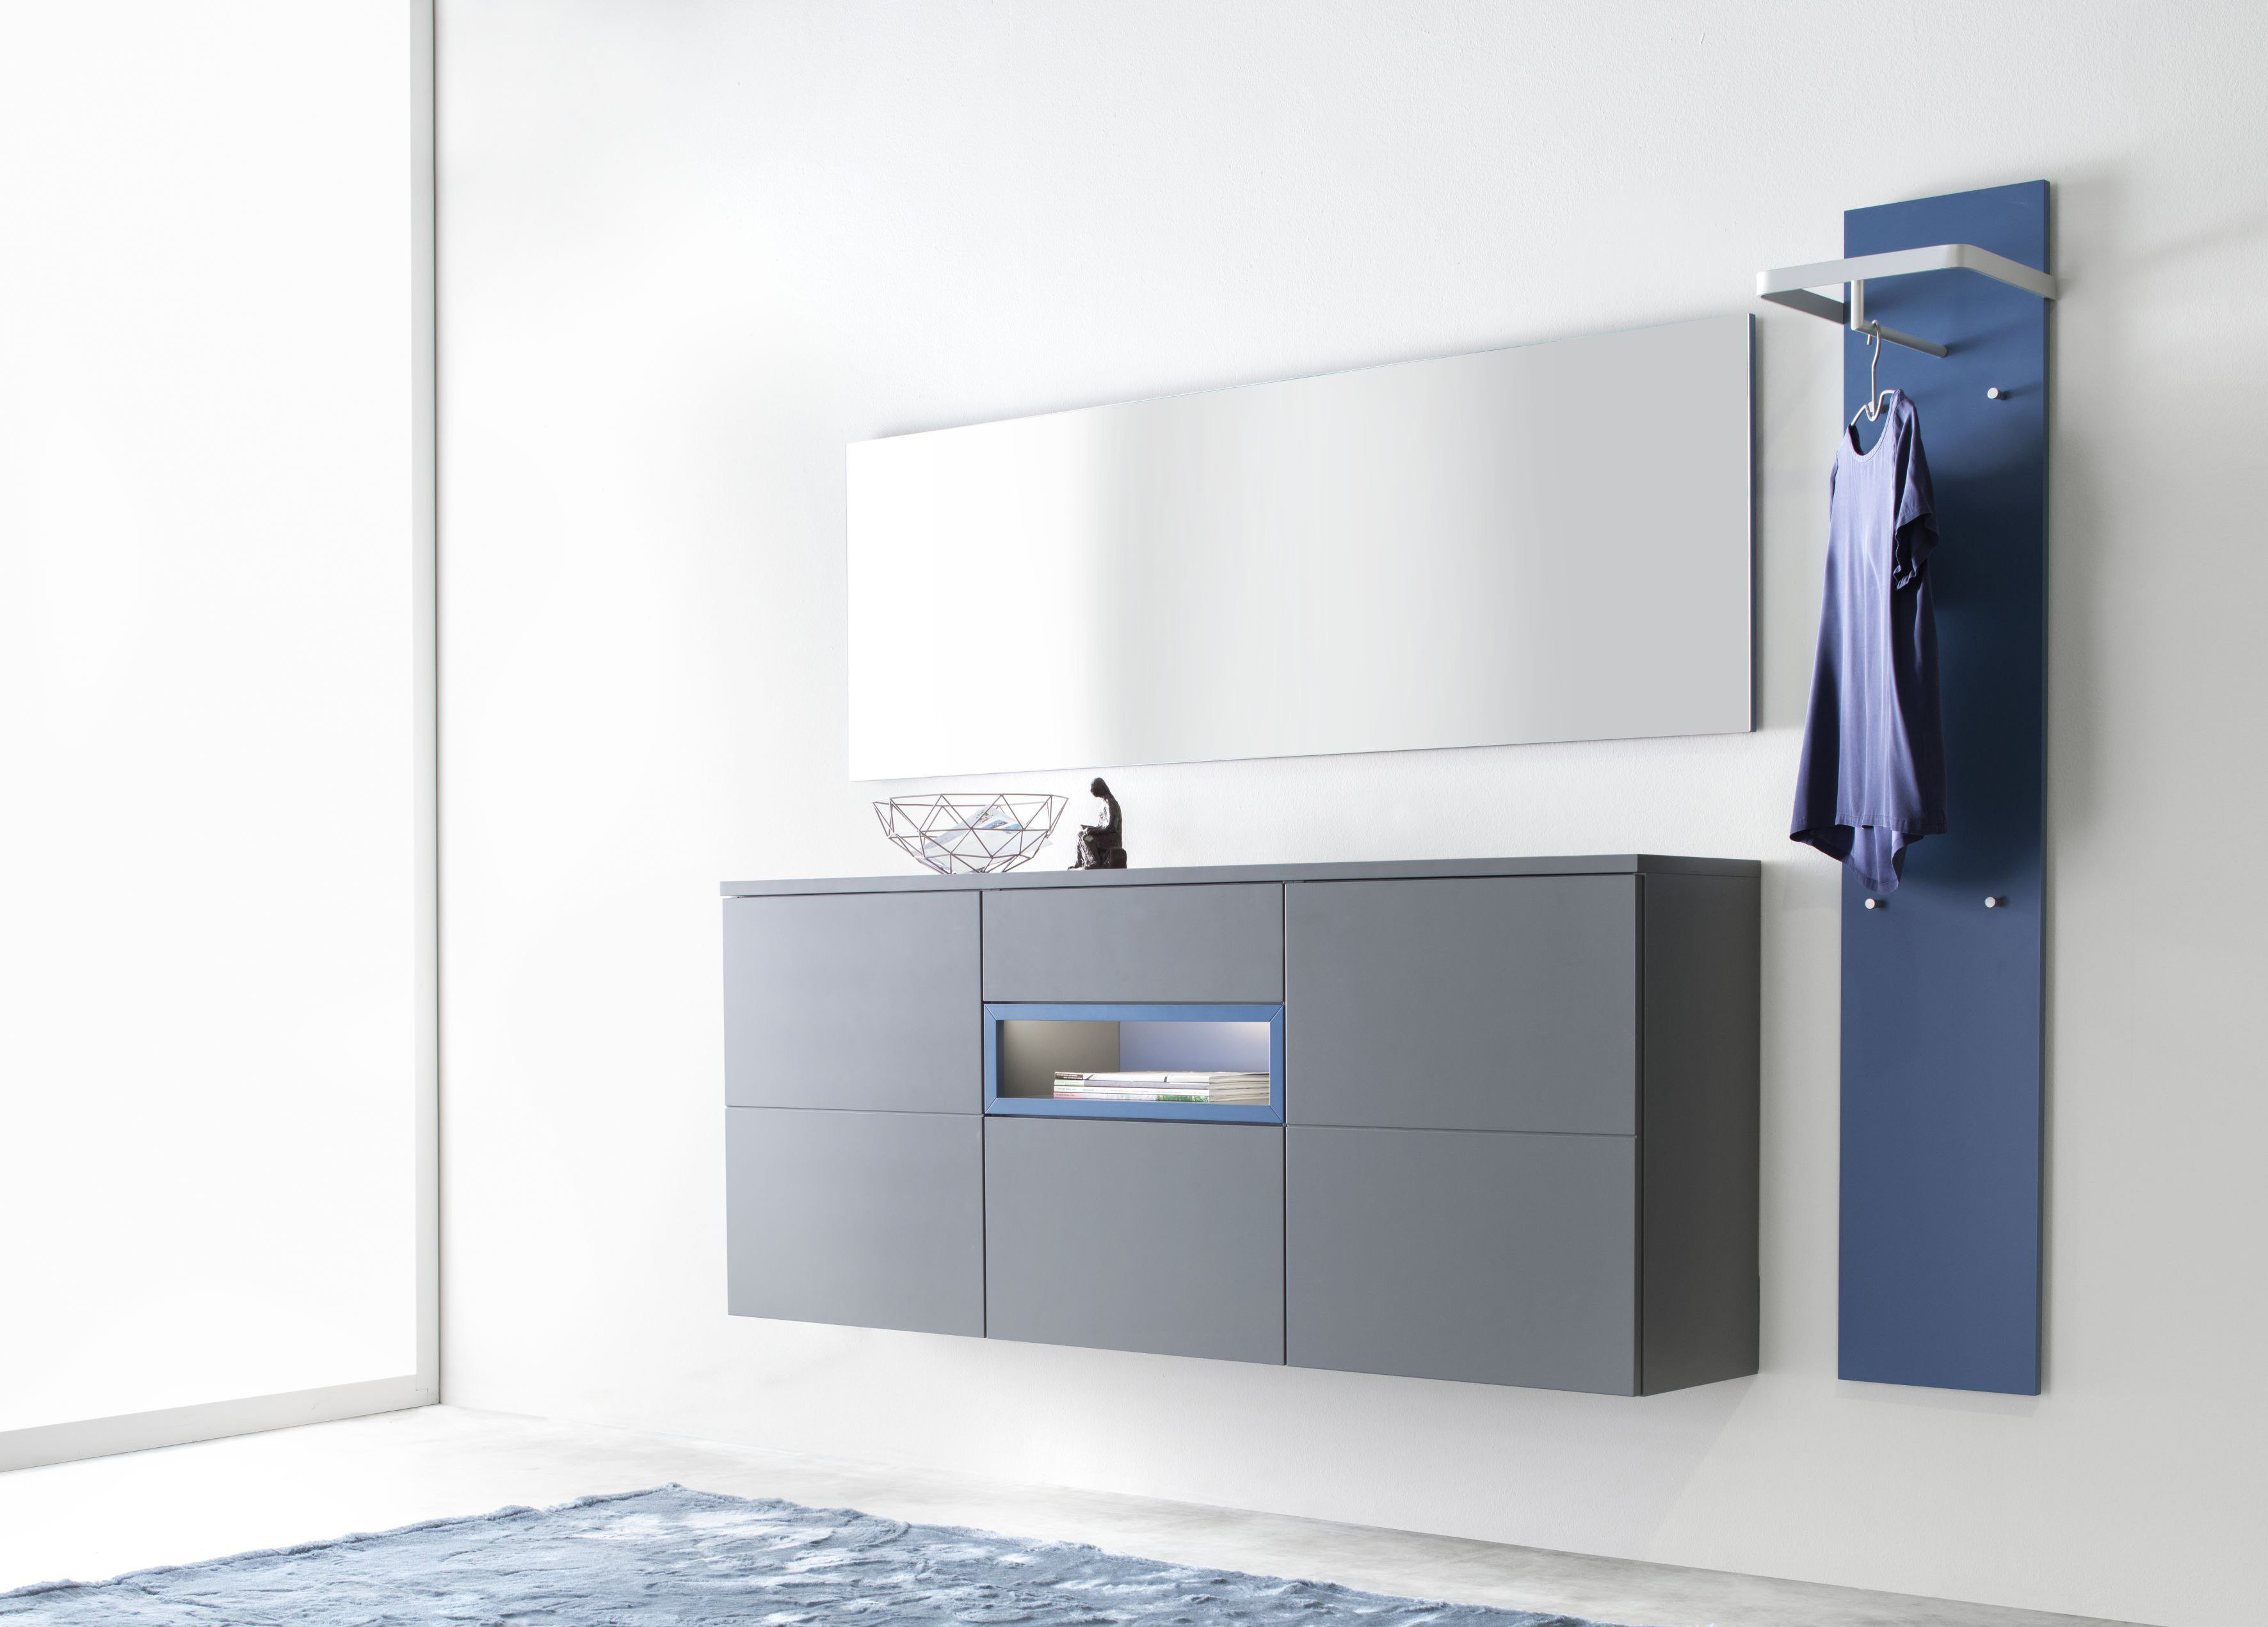 kollektion letz garderobe fabiola grau blau m bel letz ihr online shop. Black Bedroom Furniture Sets. Home Design Ideas